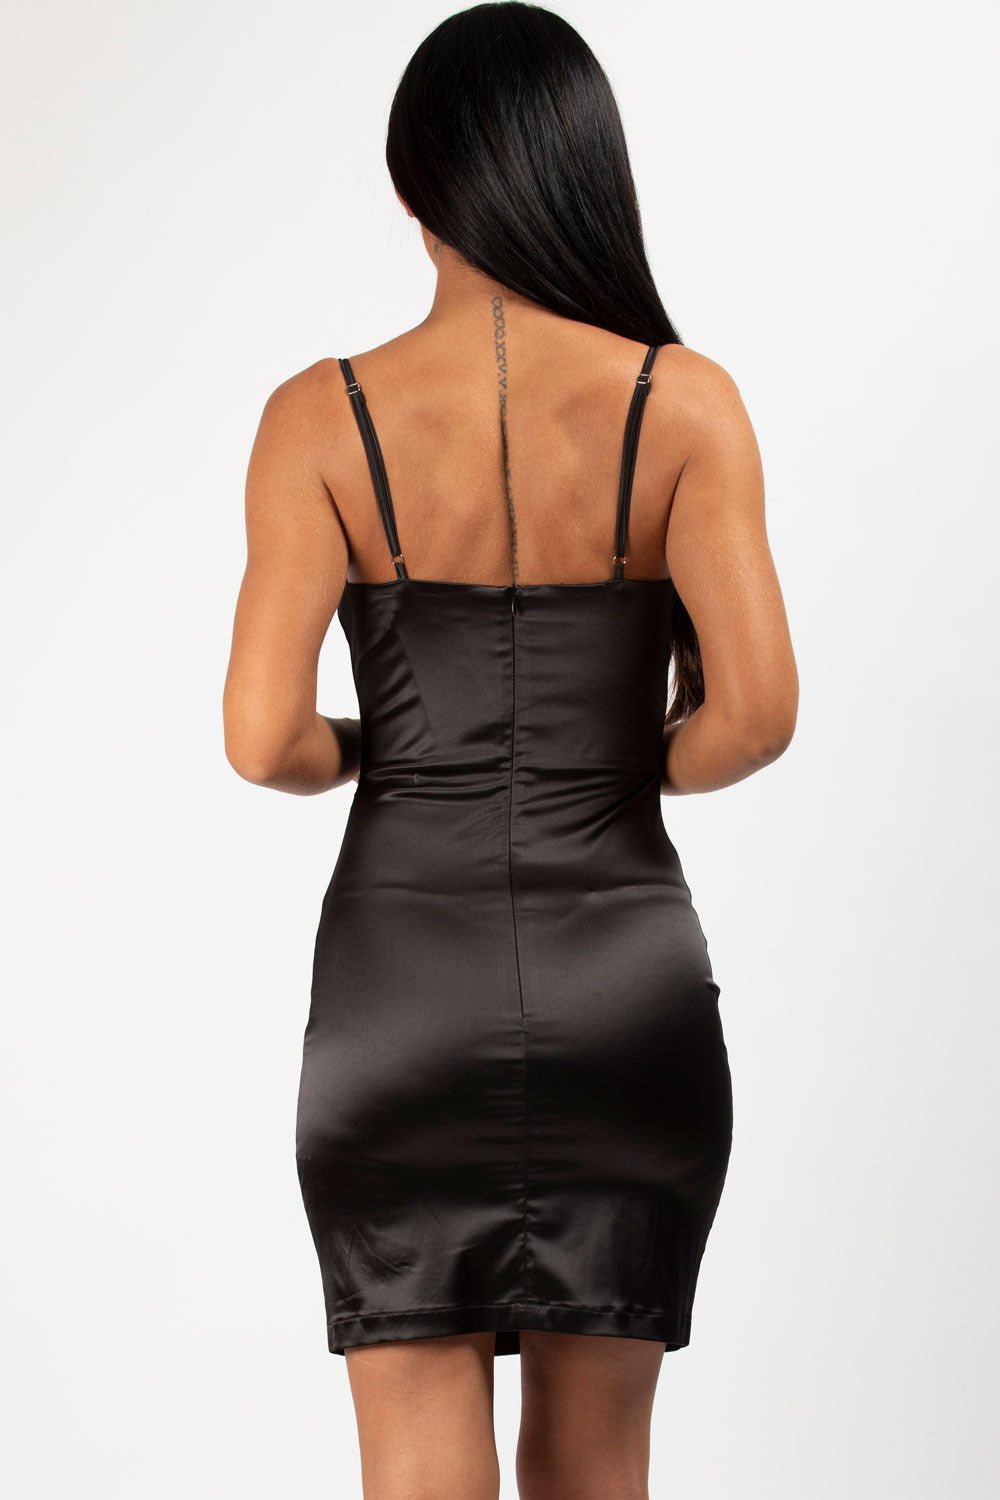 black satin bustier dress